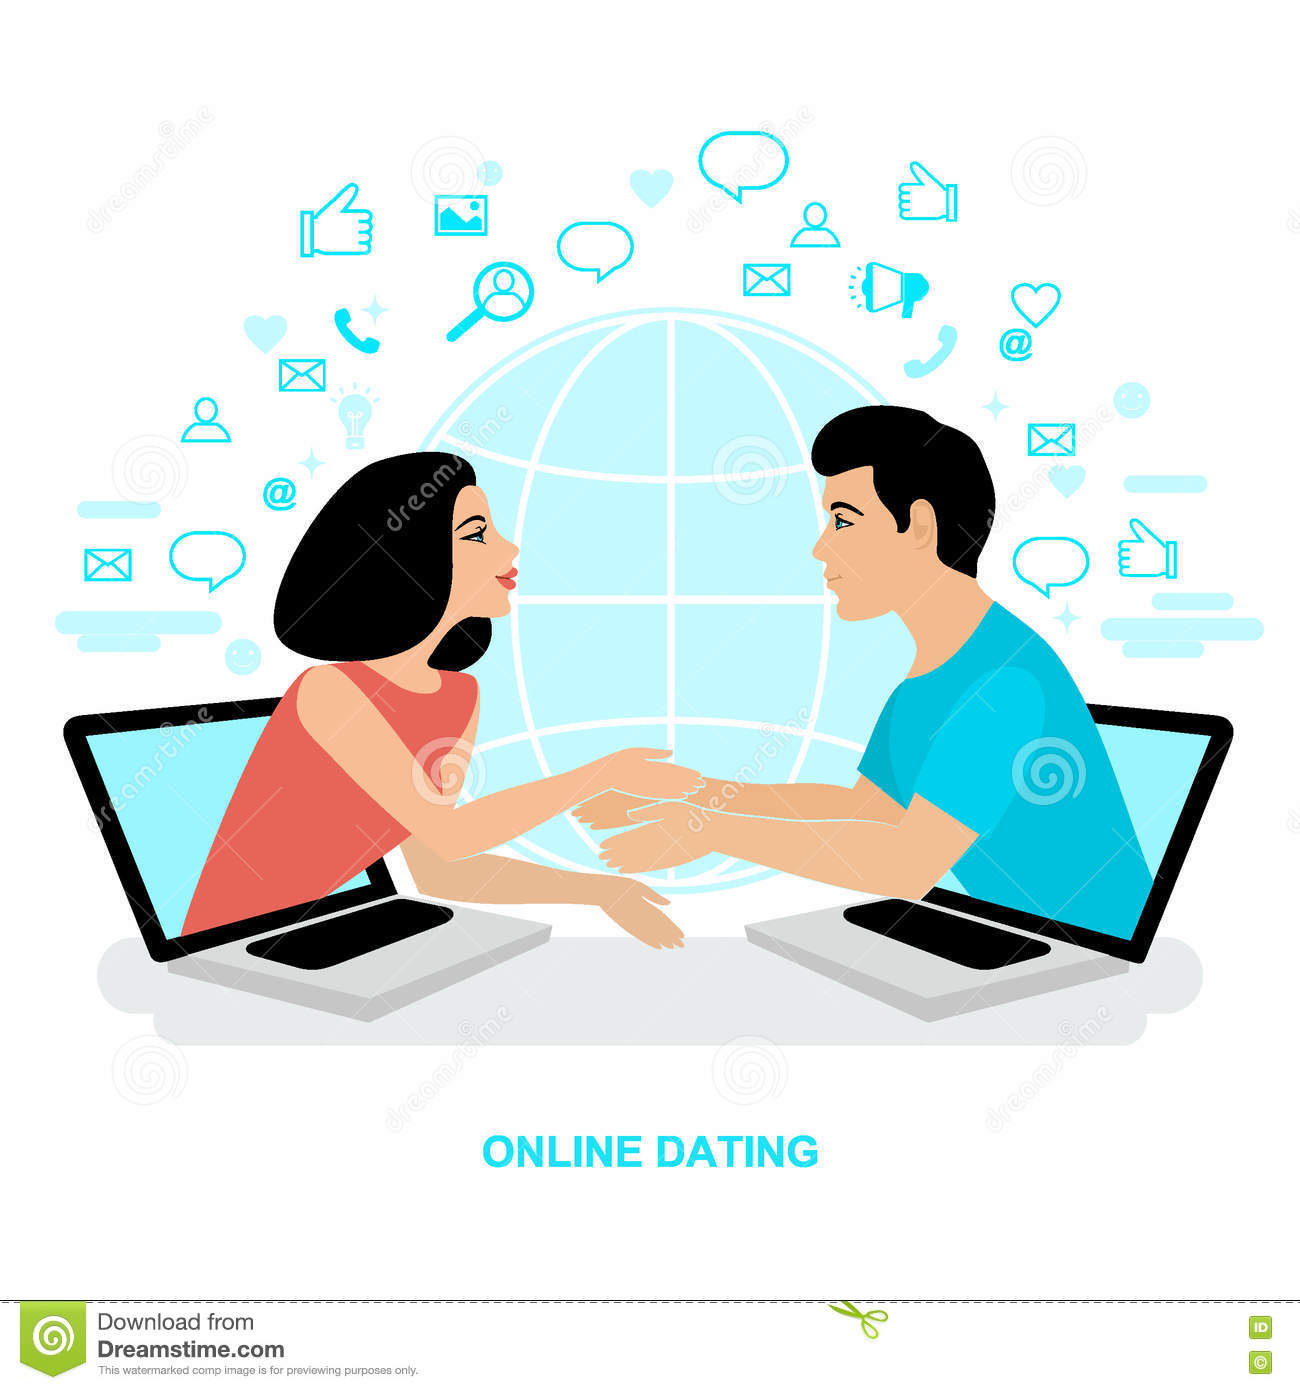 How to communicate online dating